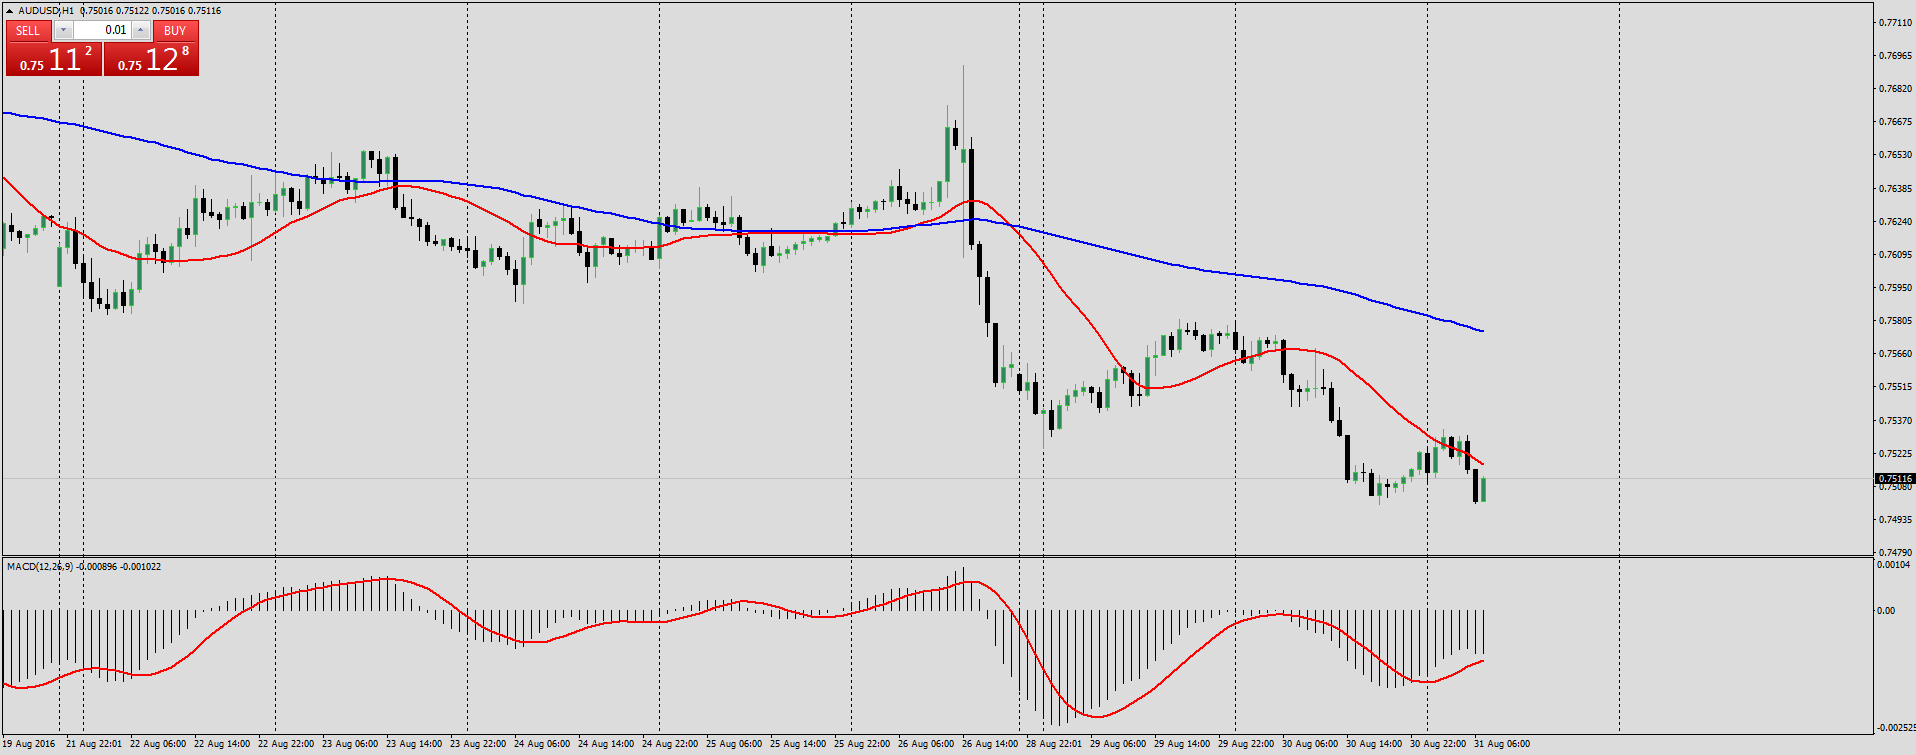 2 MA trading strategy Forex analysis for August 31